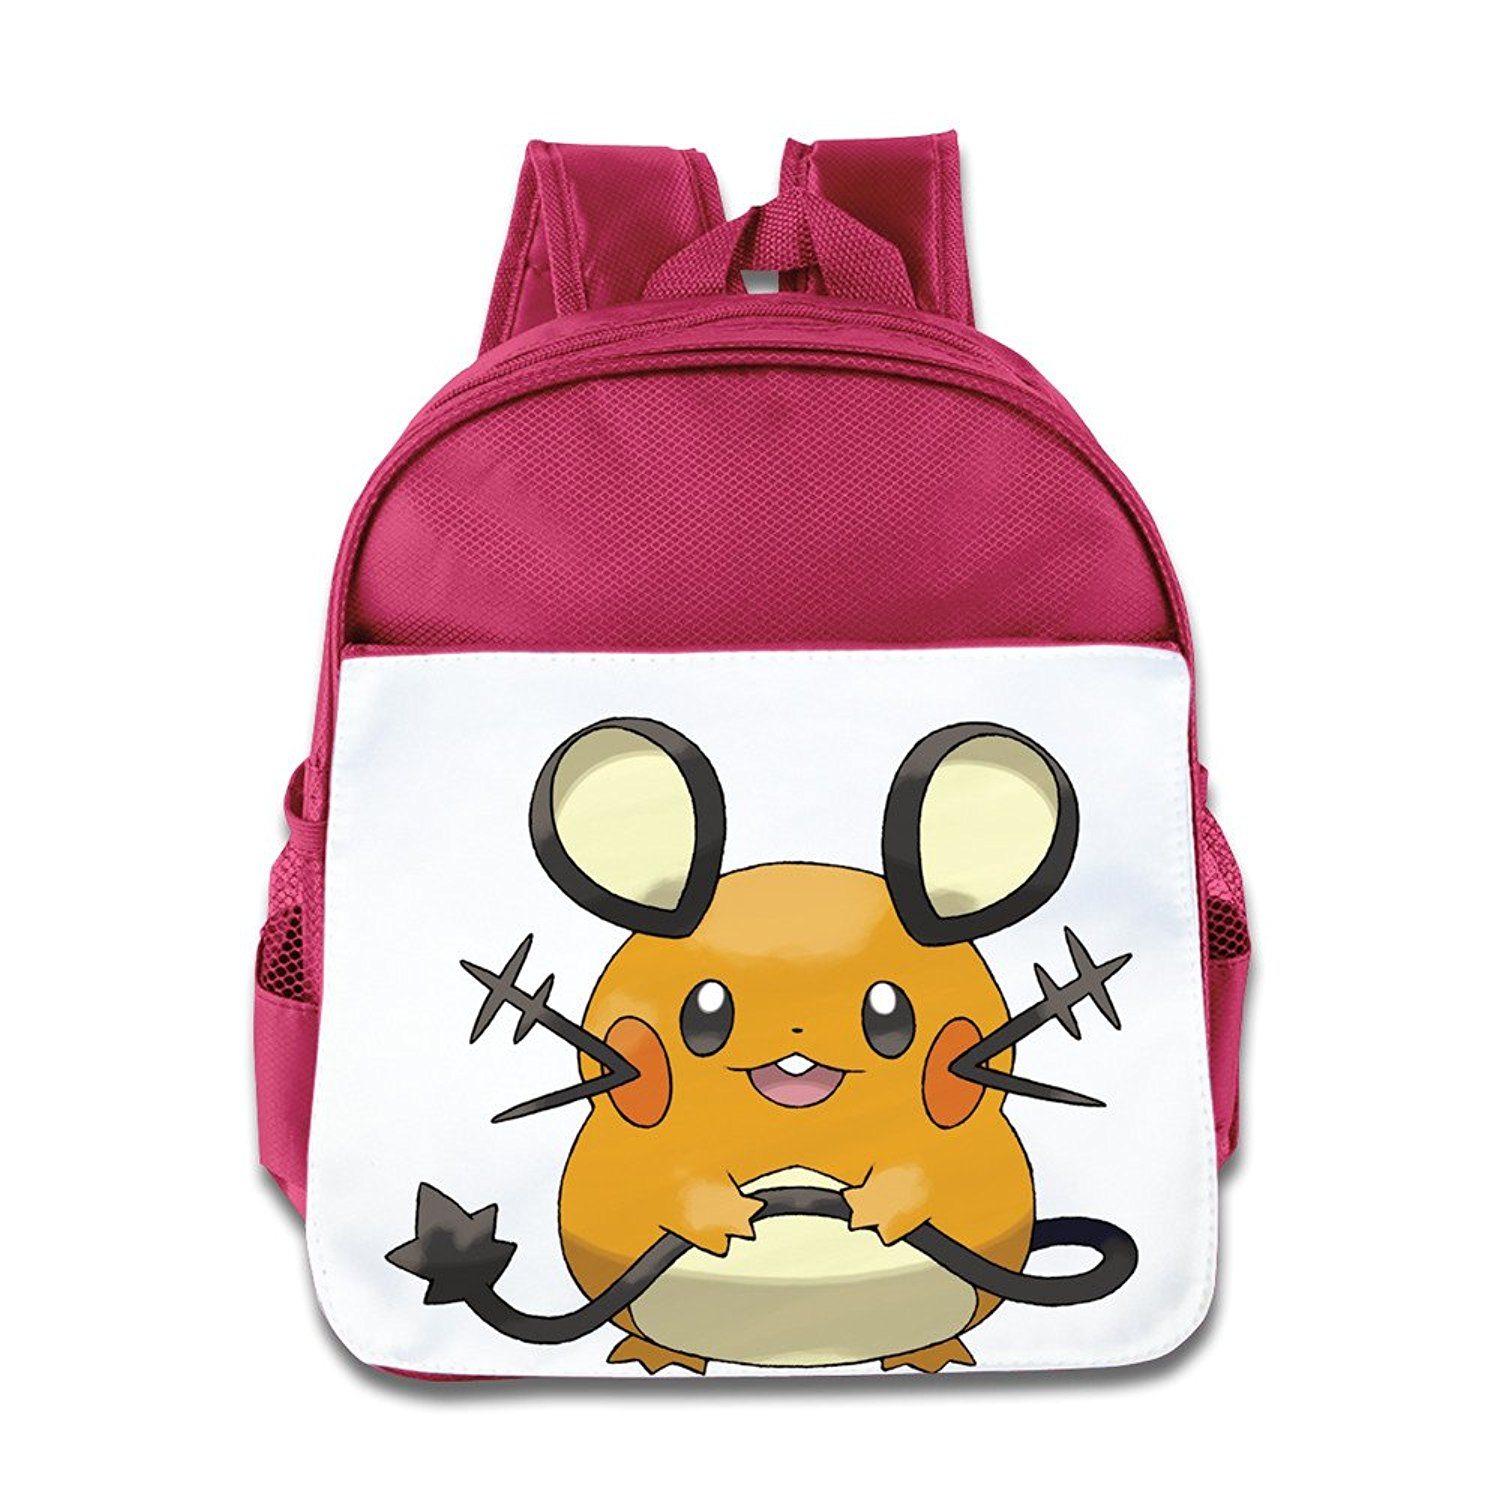 ccf78179f24e Get Quotations · Dedenne Girls And Boys Kid s Backpacks Cool Sports School  Backpacks